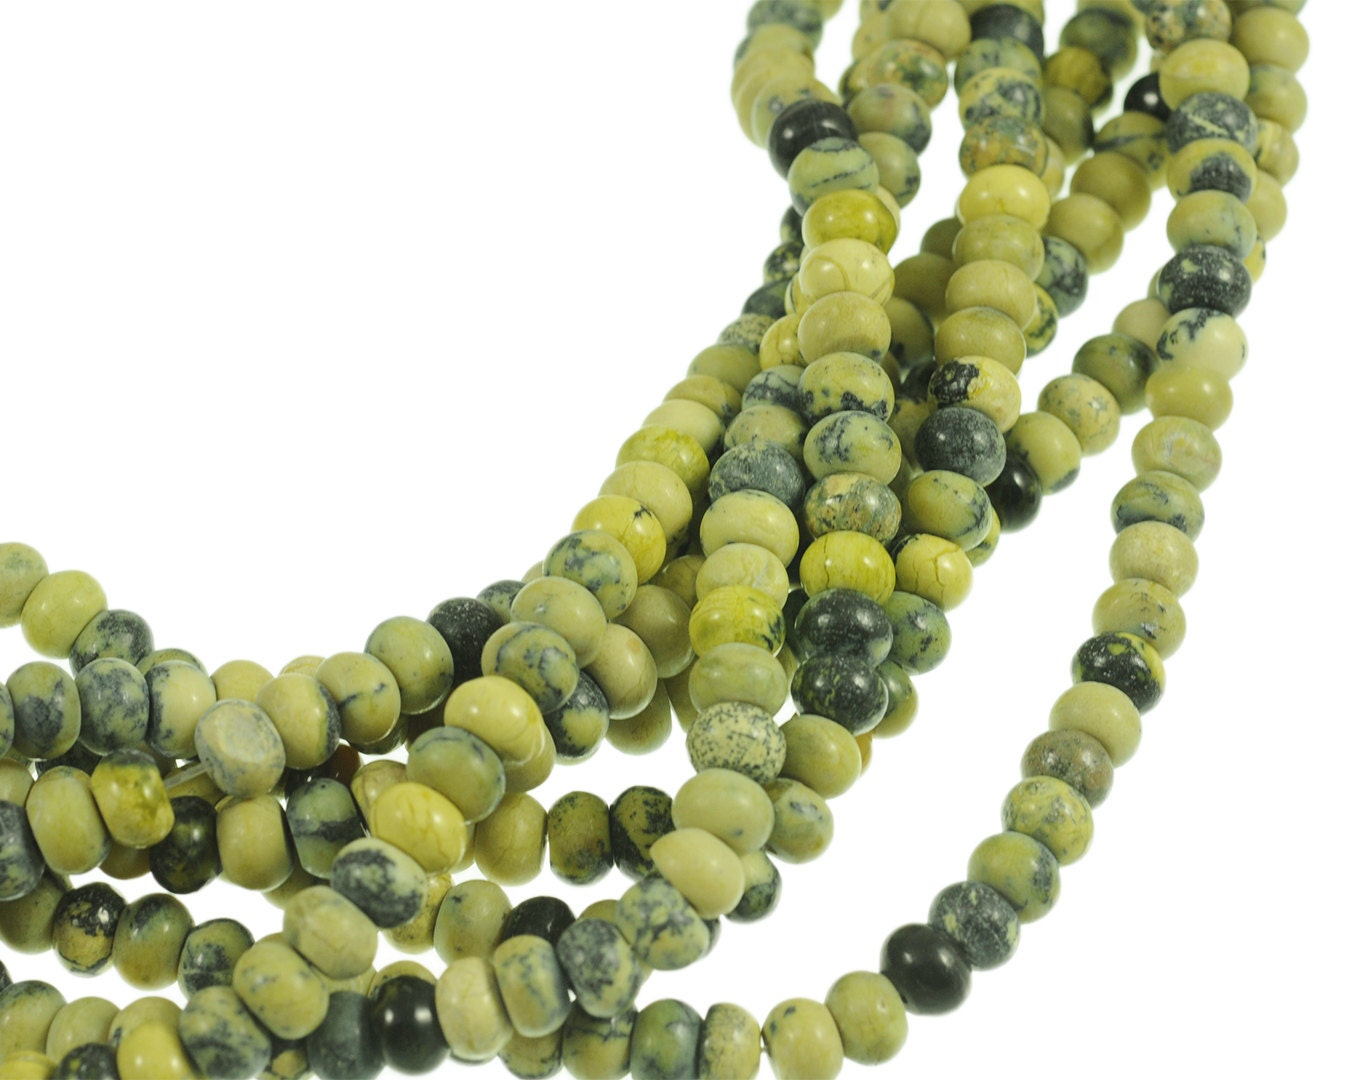 Yellow Turquoise 5x8mm Rondell Gemstone Beads  Full 16. Lady Watches. Military Malaysia Watches. Airman Watches. 1million Dollar Watches